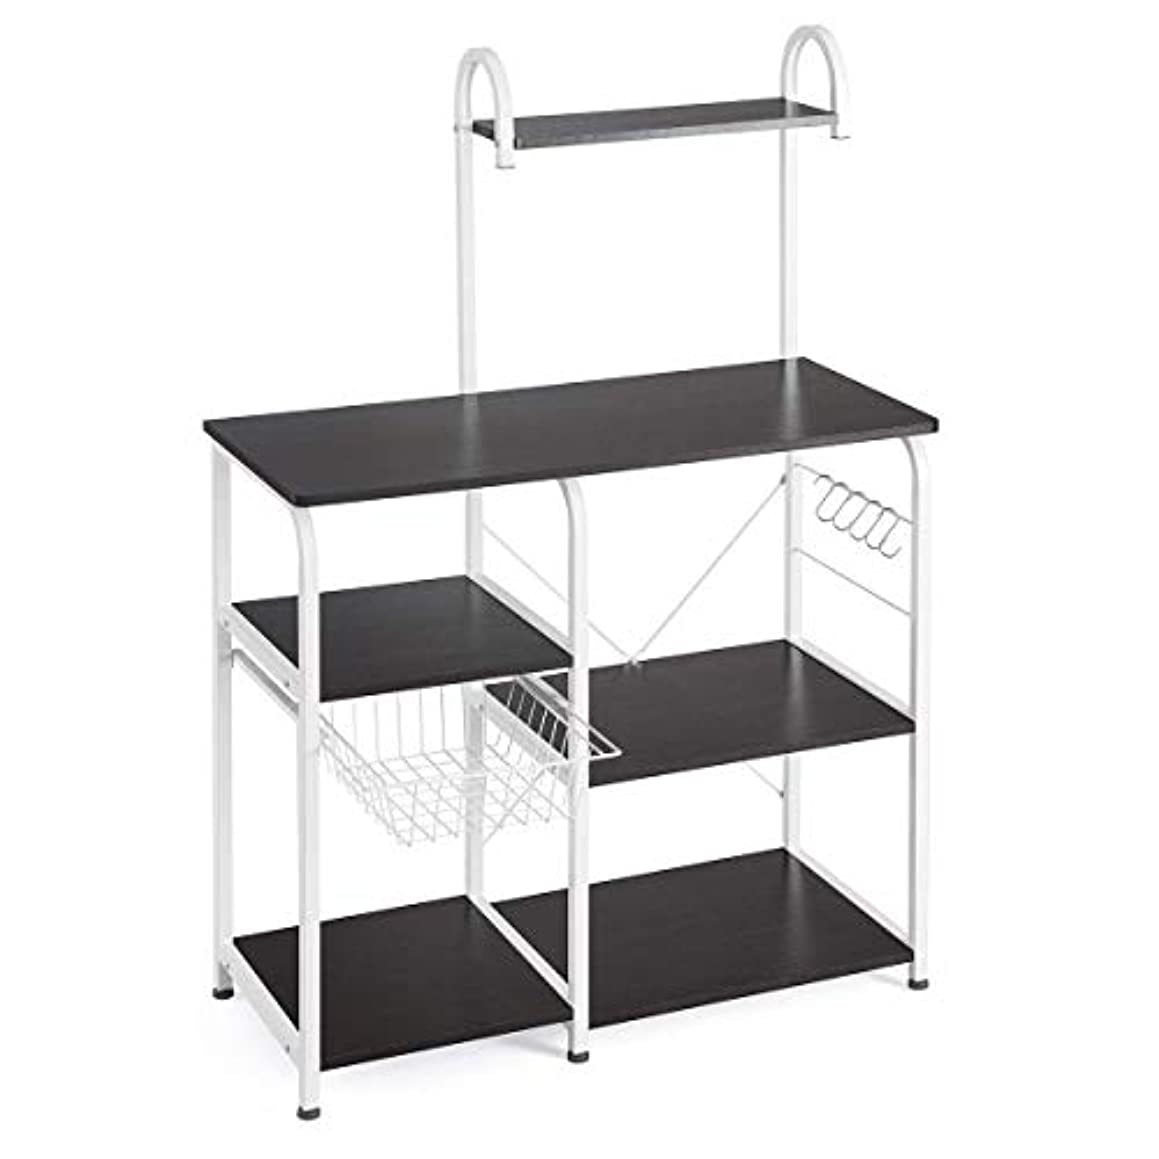 Shmei US Fast Shippment Multipurpose Kitchen Utility Storage Shelf Microwave Stand 4-Tier+3-Tier Shelf for Kitchen Rack Microwave Oven Floor Shelf Storage Cupboard (Black)